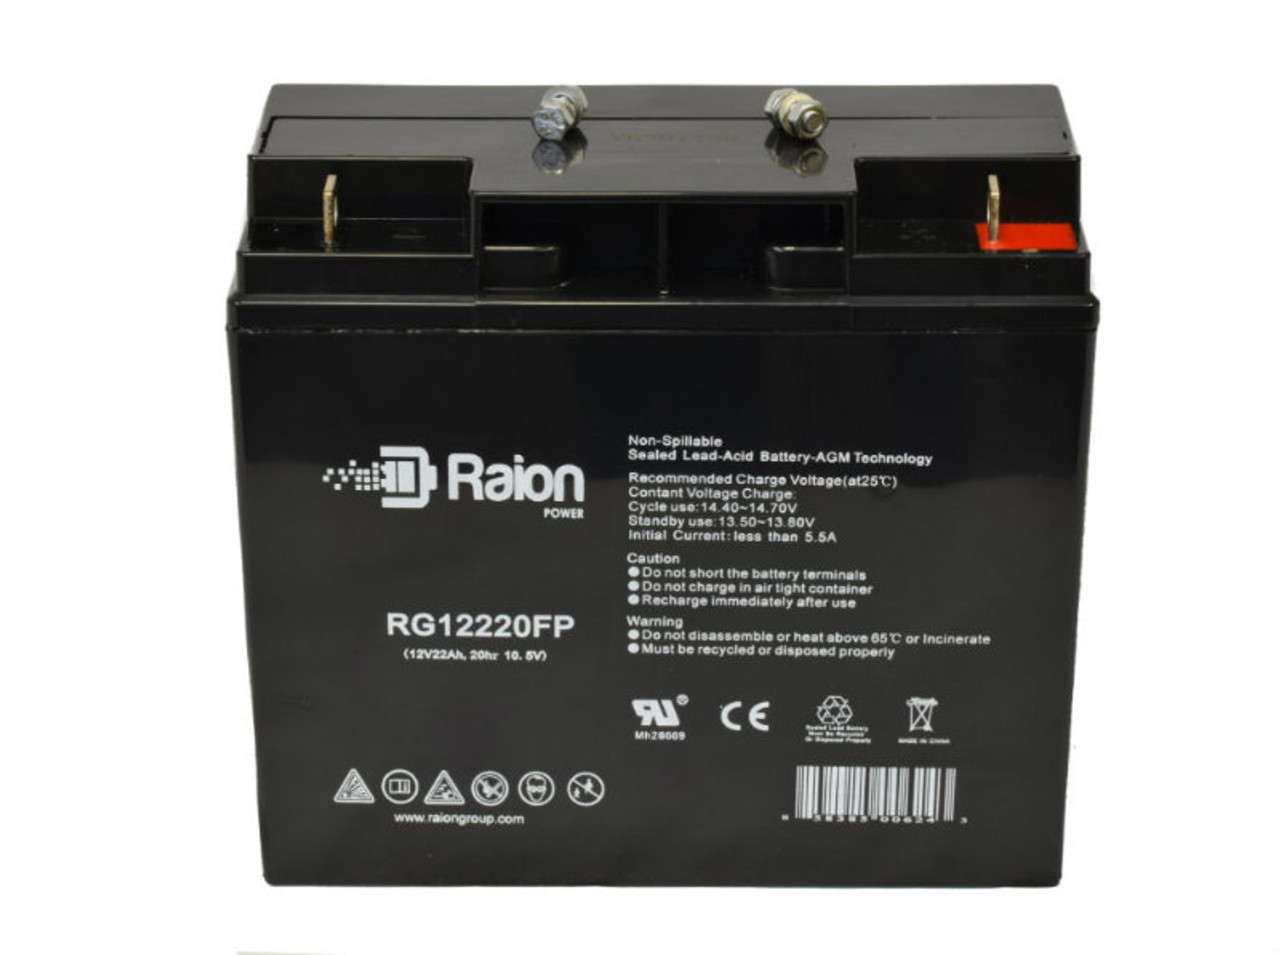 RG12220FP Sealed Lead Acid Battery Pack For Wheelcare Super Light Scooter Mobility Scooter